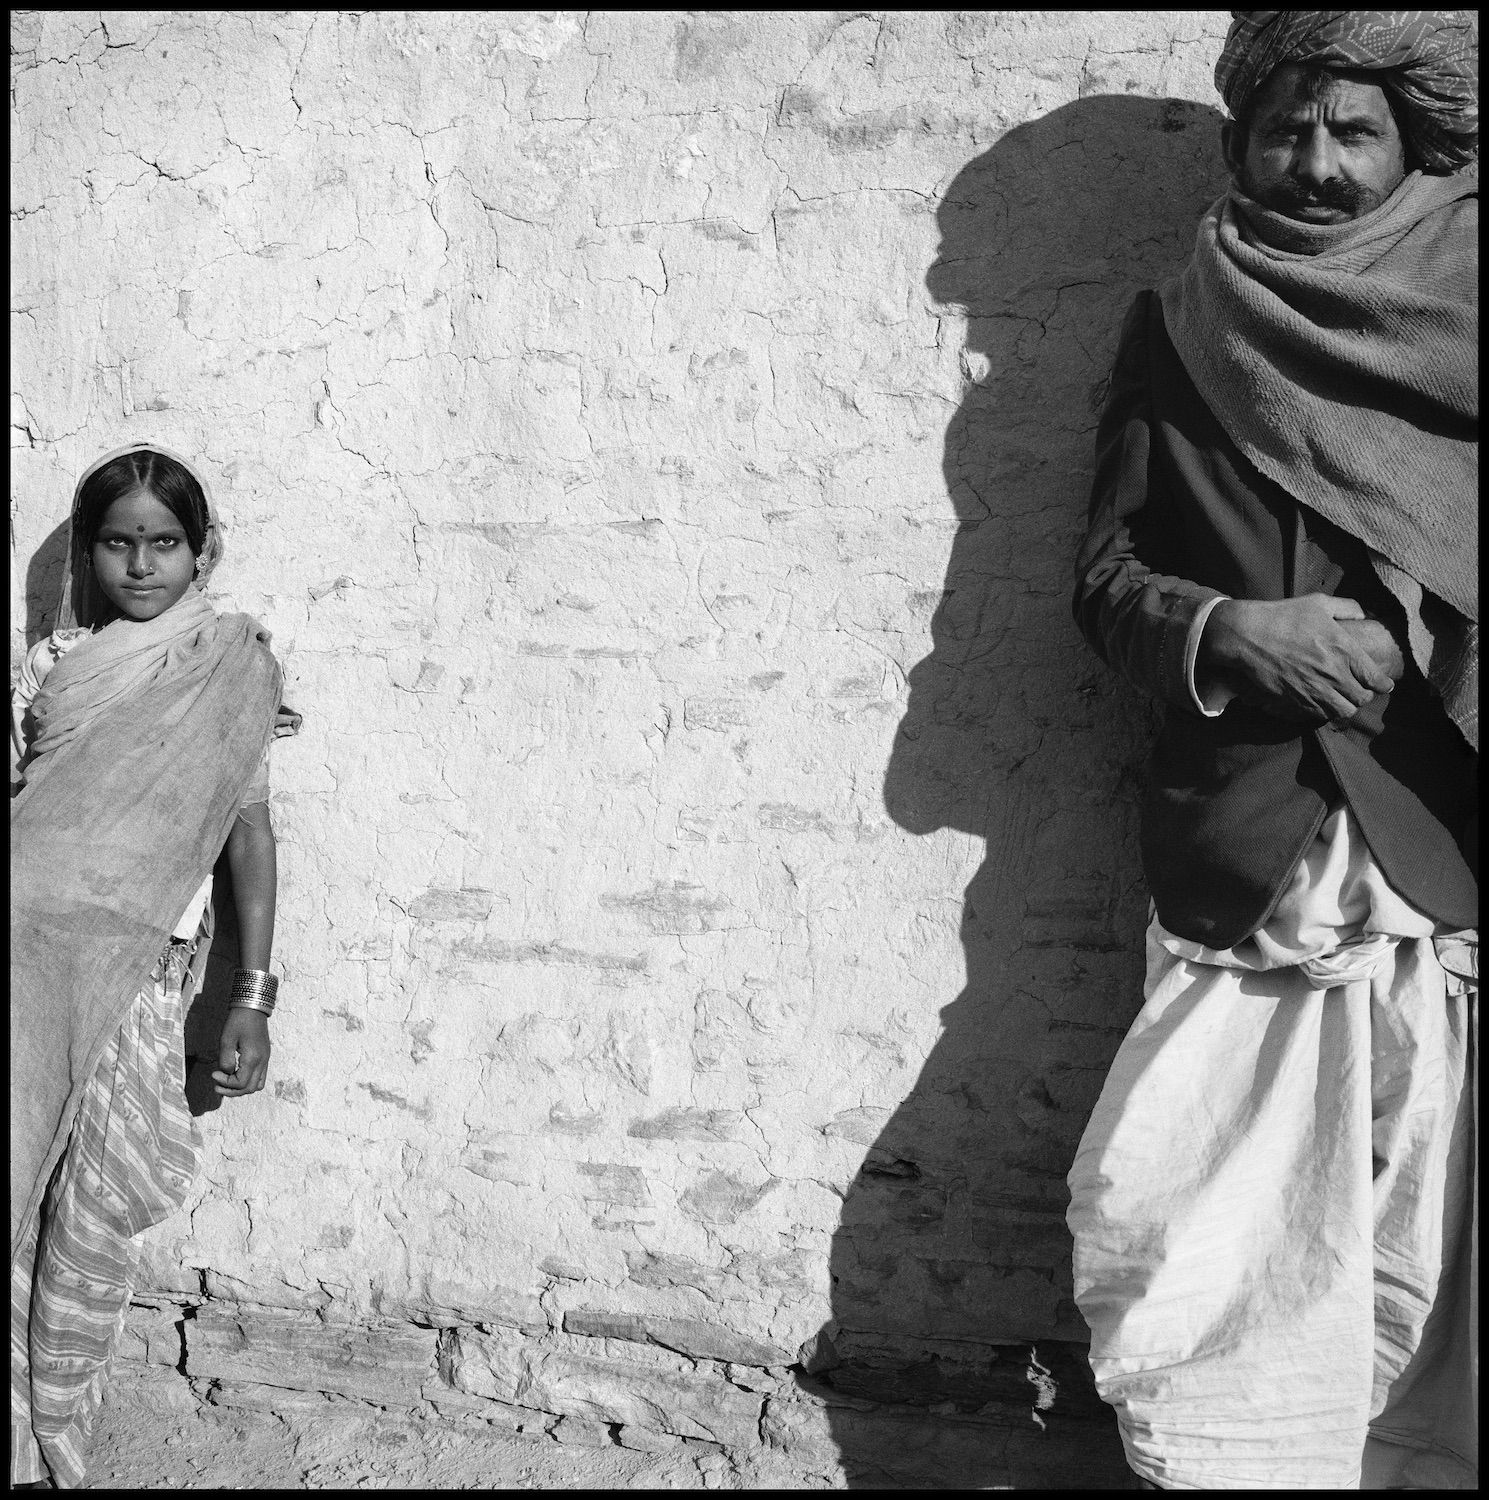 Untitled, Rajasthan, India 1991